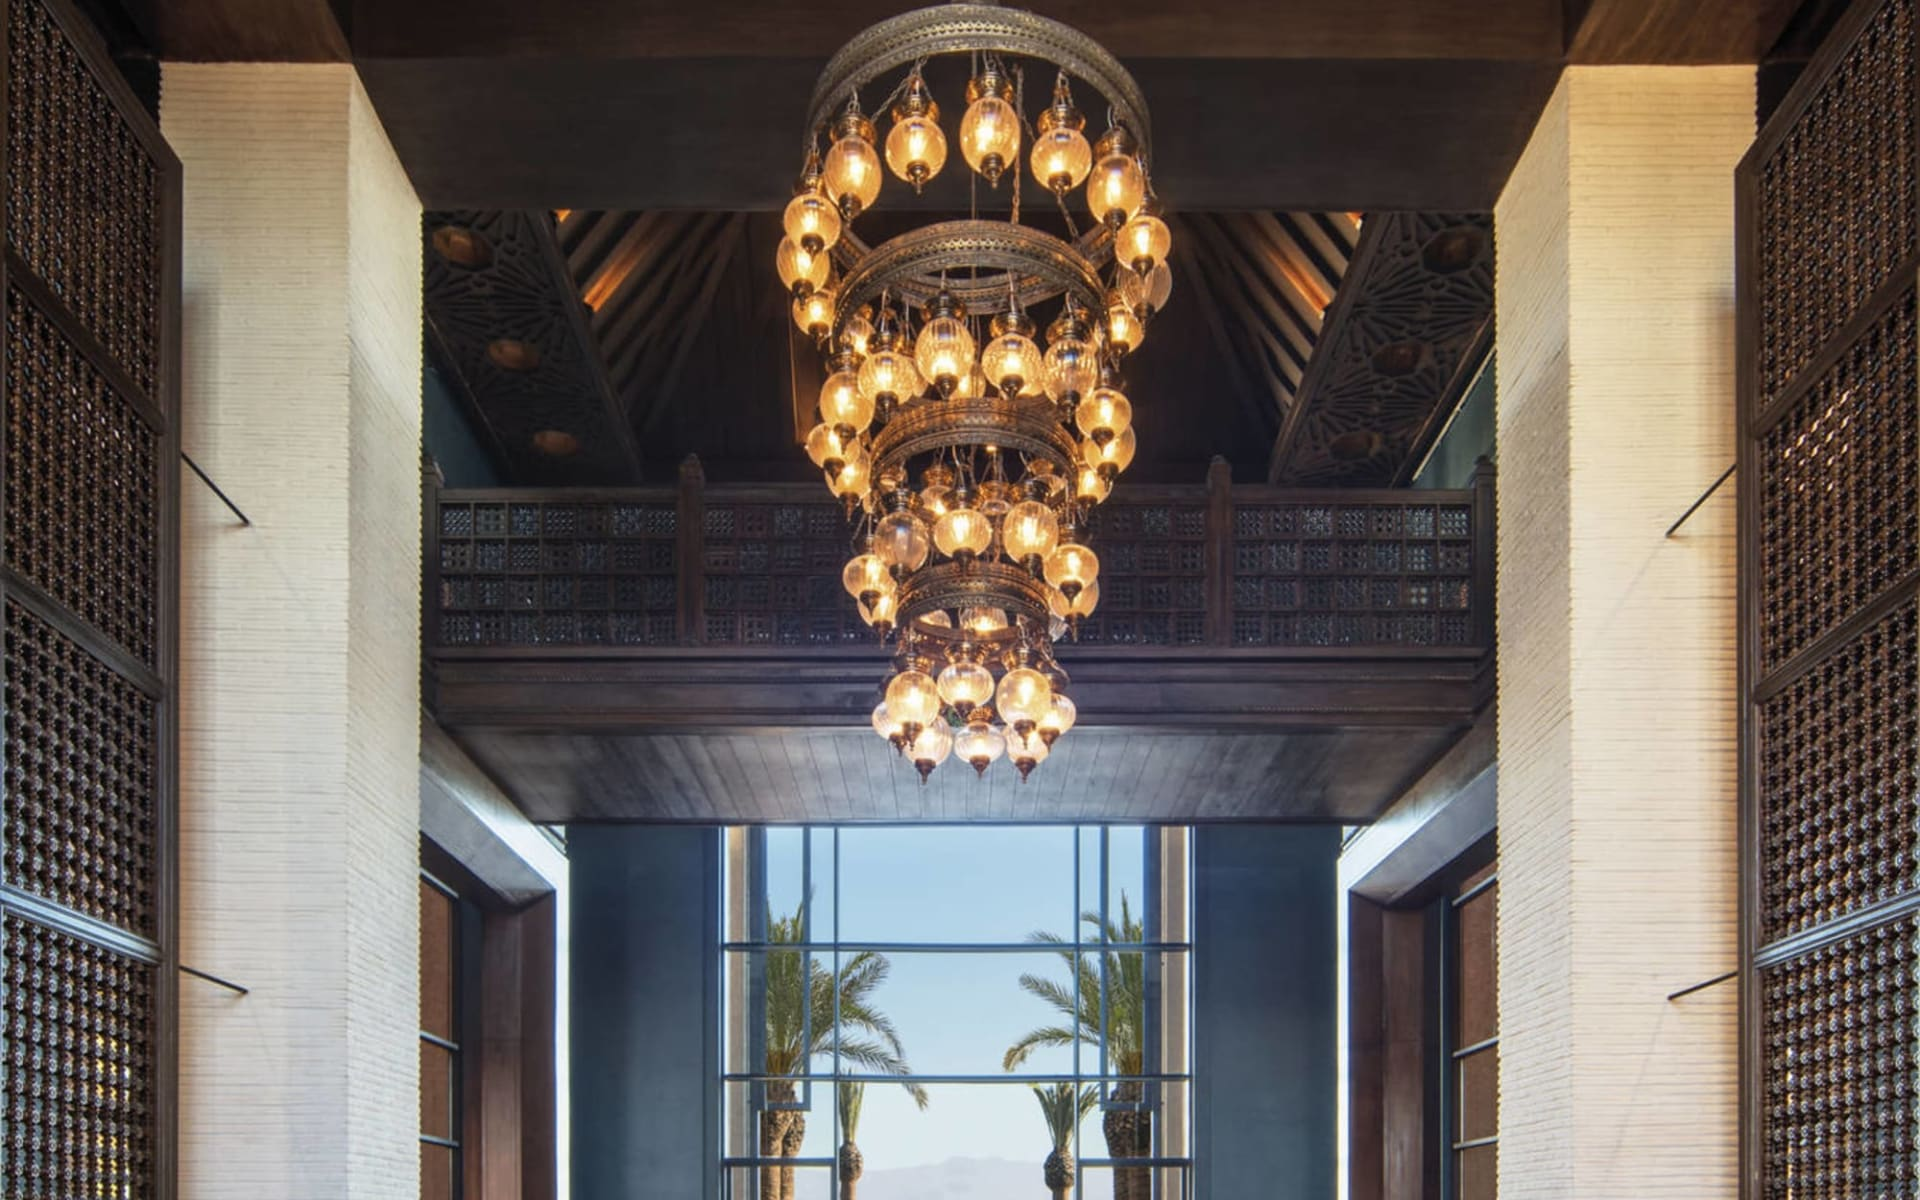 Royal Palm Beachcomber Luxury Marrakesch:  Royal Palm Beachcomber Luxury Marrakesch - Lobby